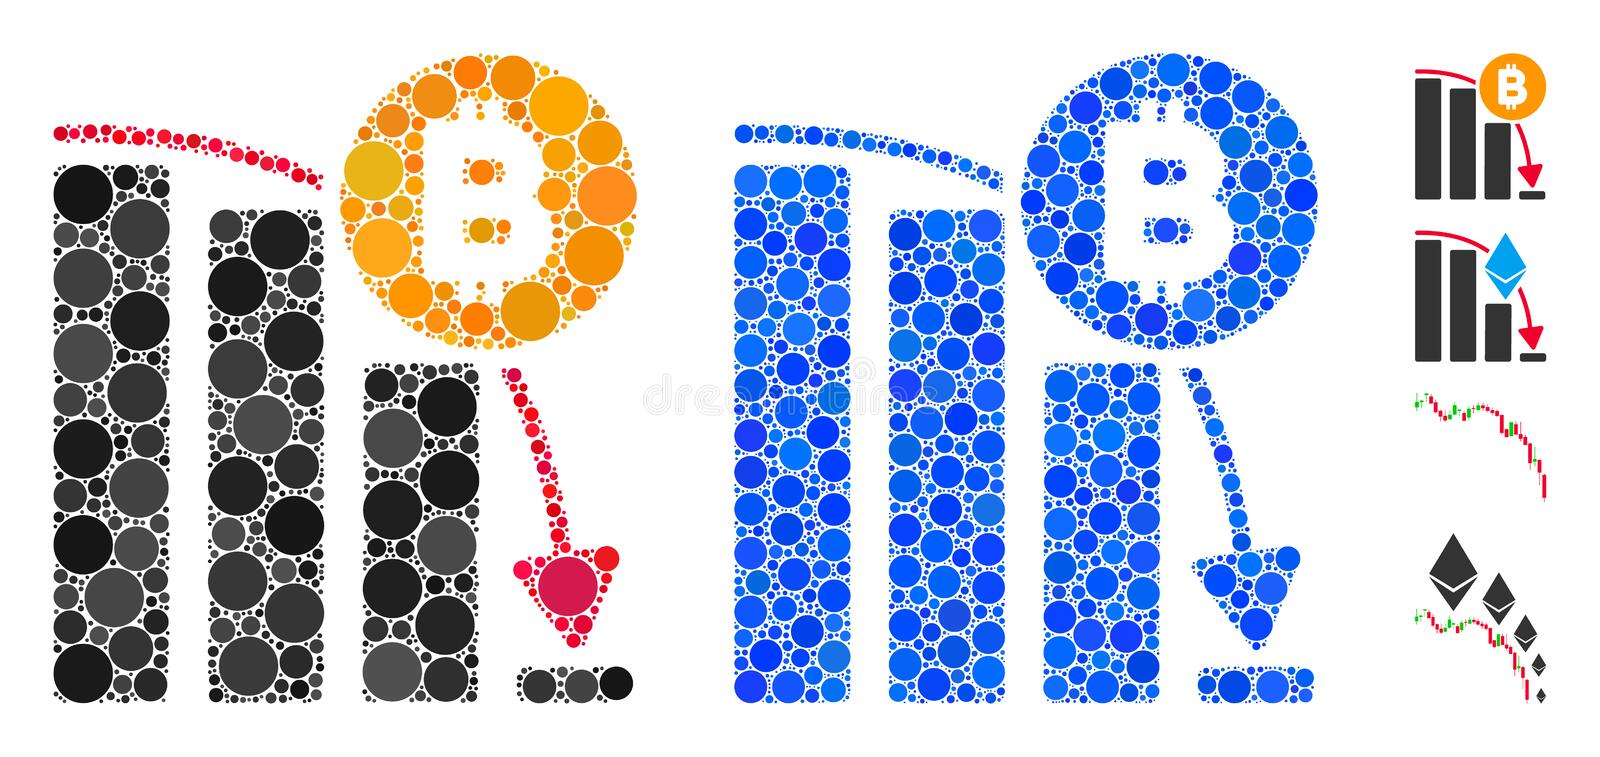 Bitcoin Panic Fall Chart Mosaic Icon of Spheric Items royalty free illustration